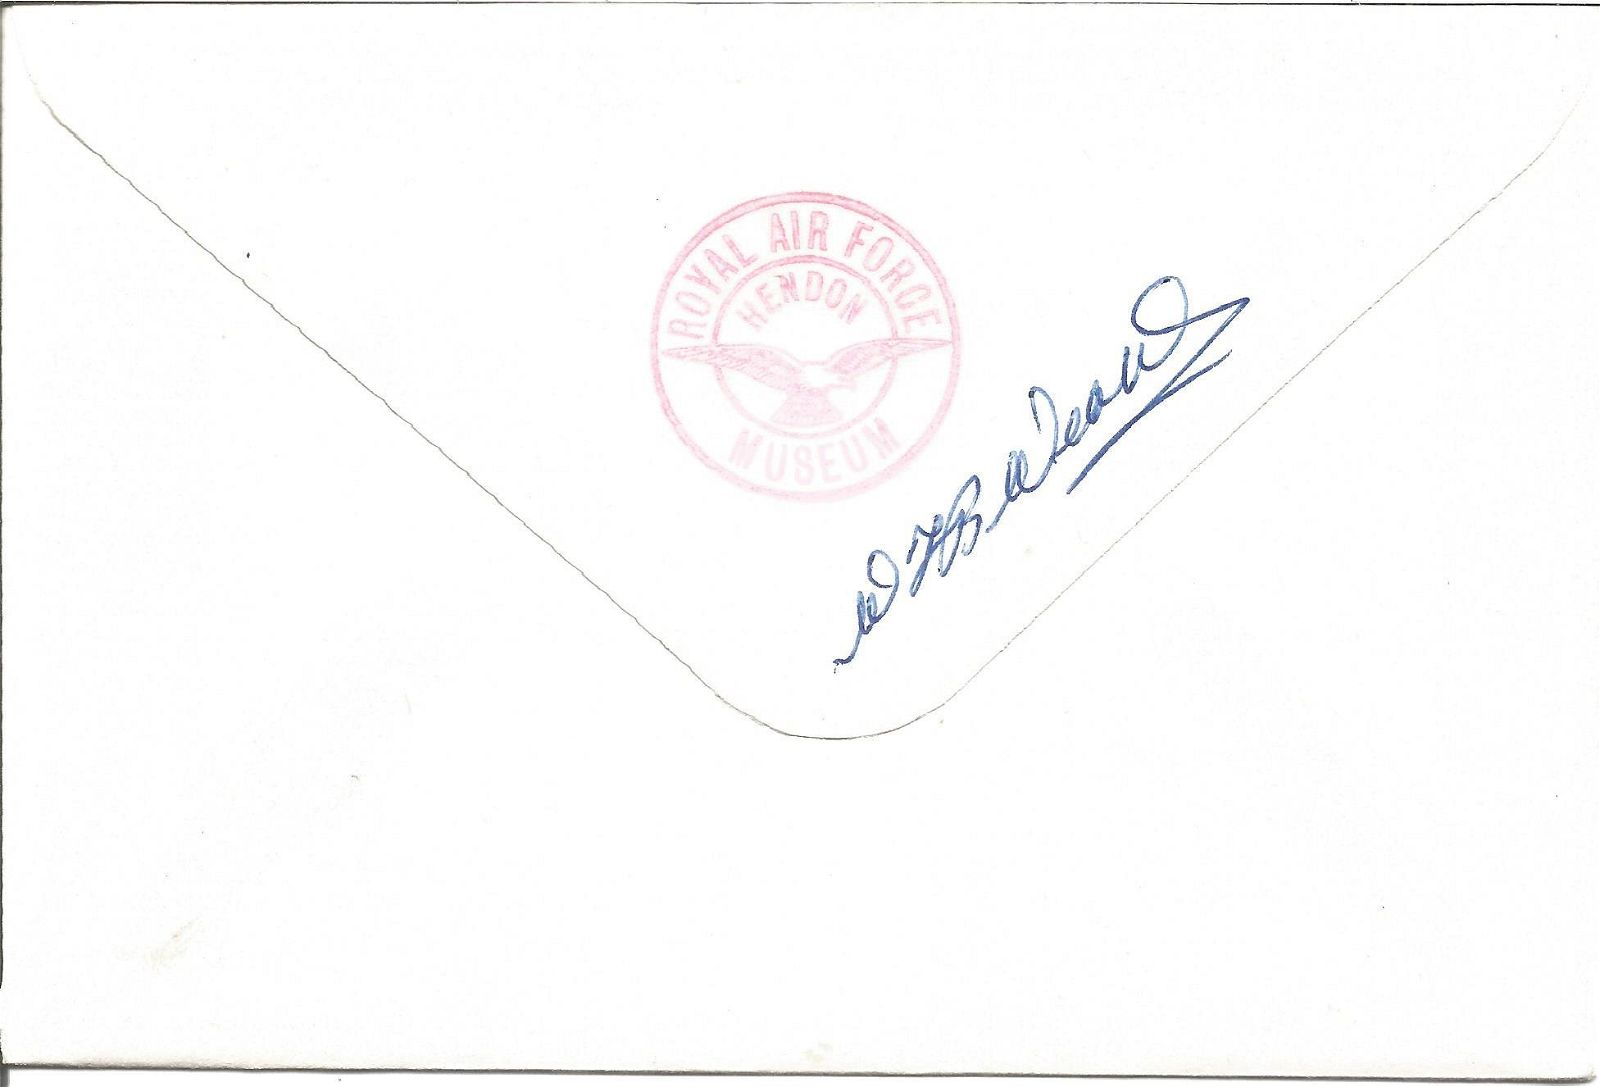 The Pat O'Leary Line signed RAF cover. Flown in